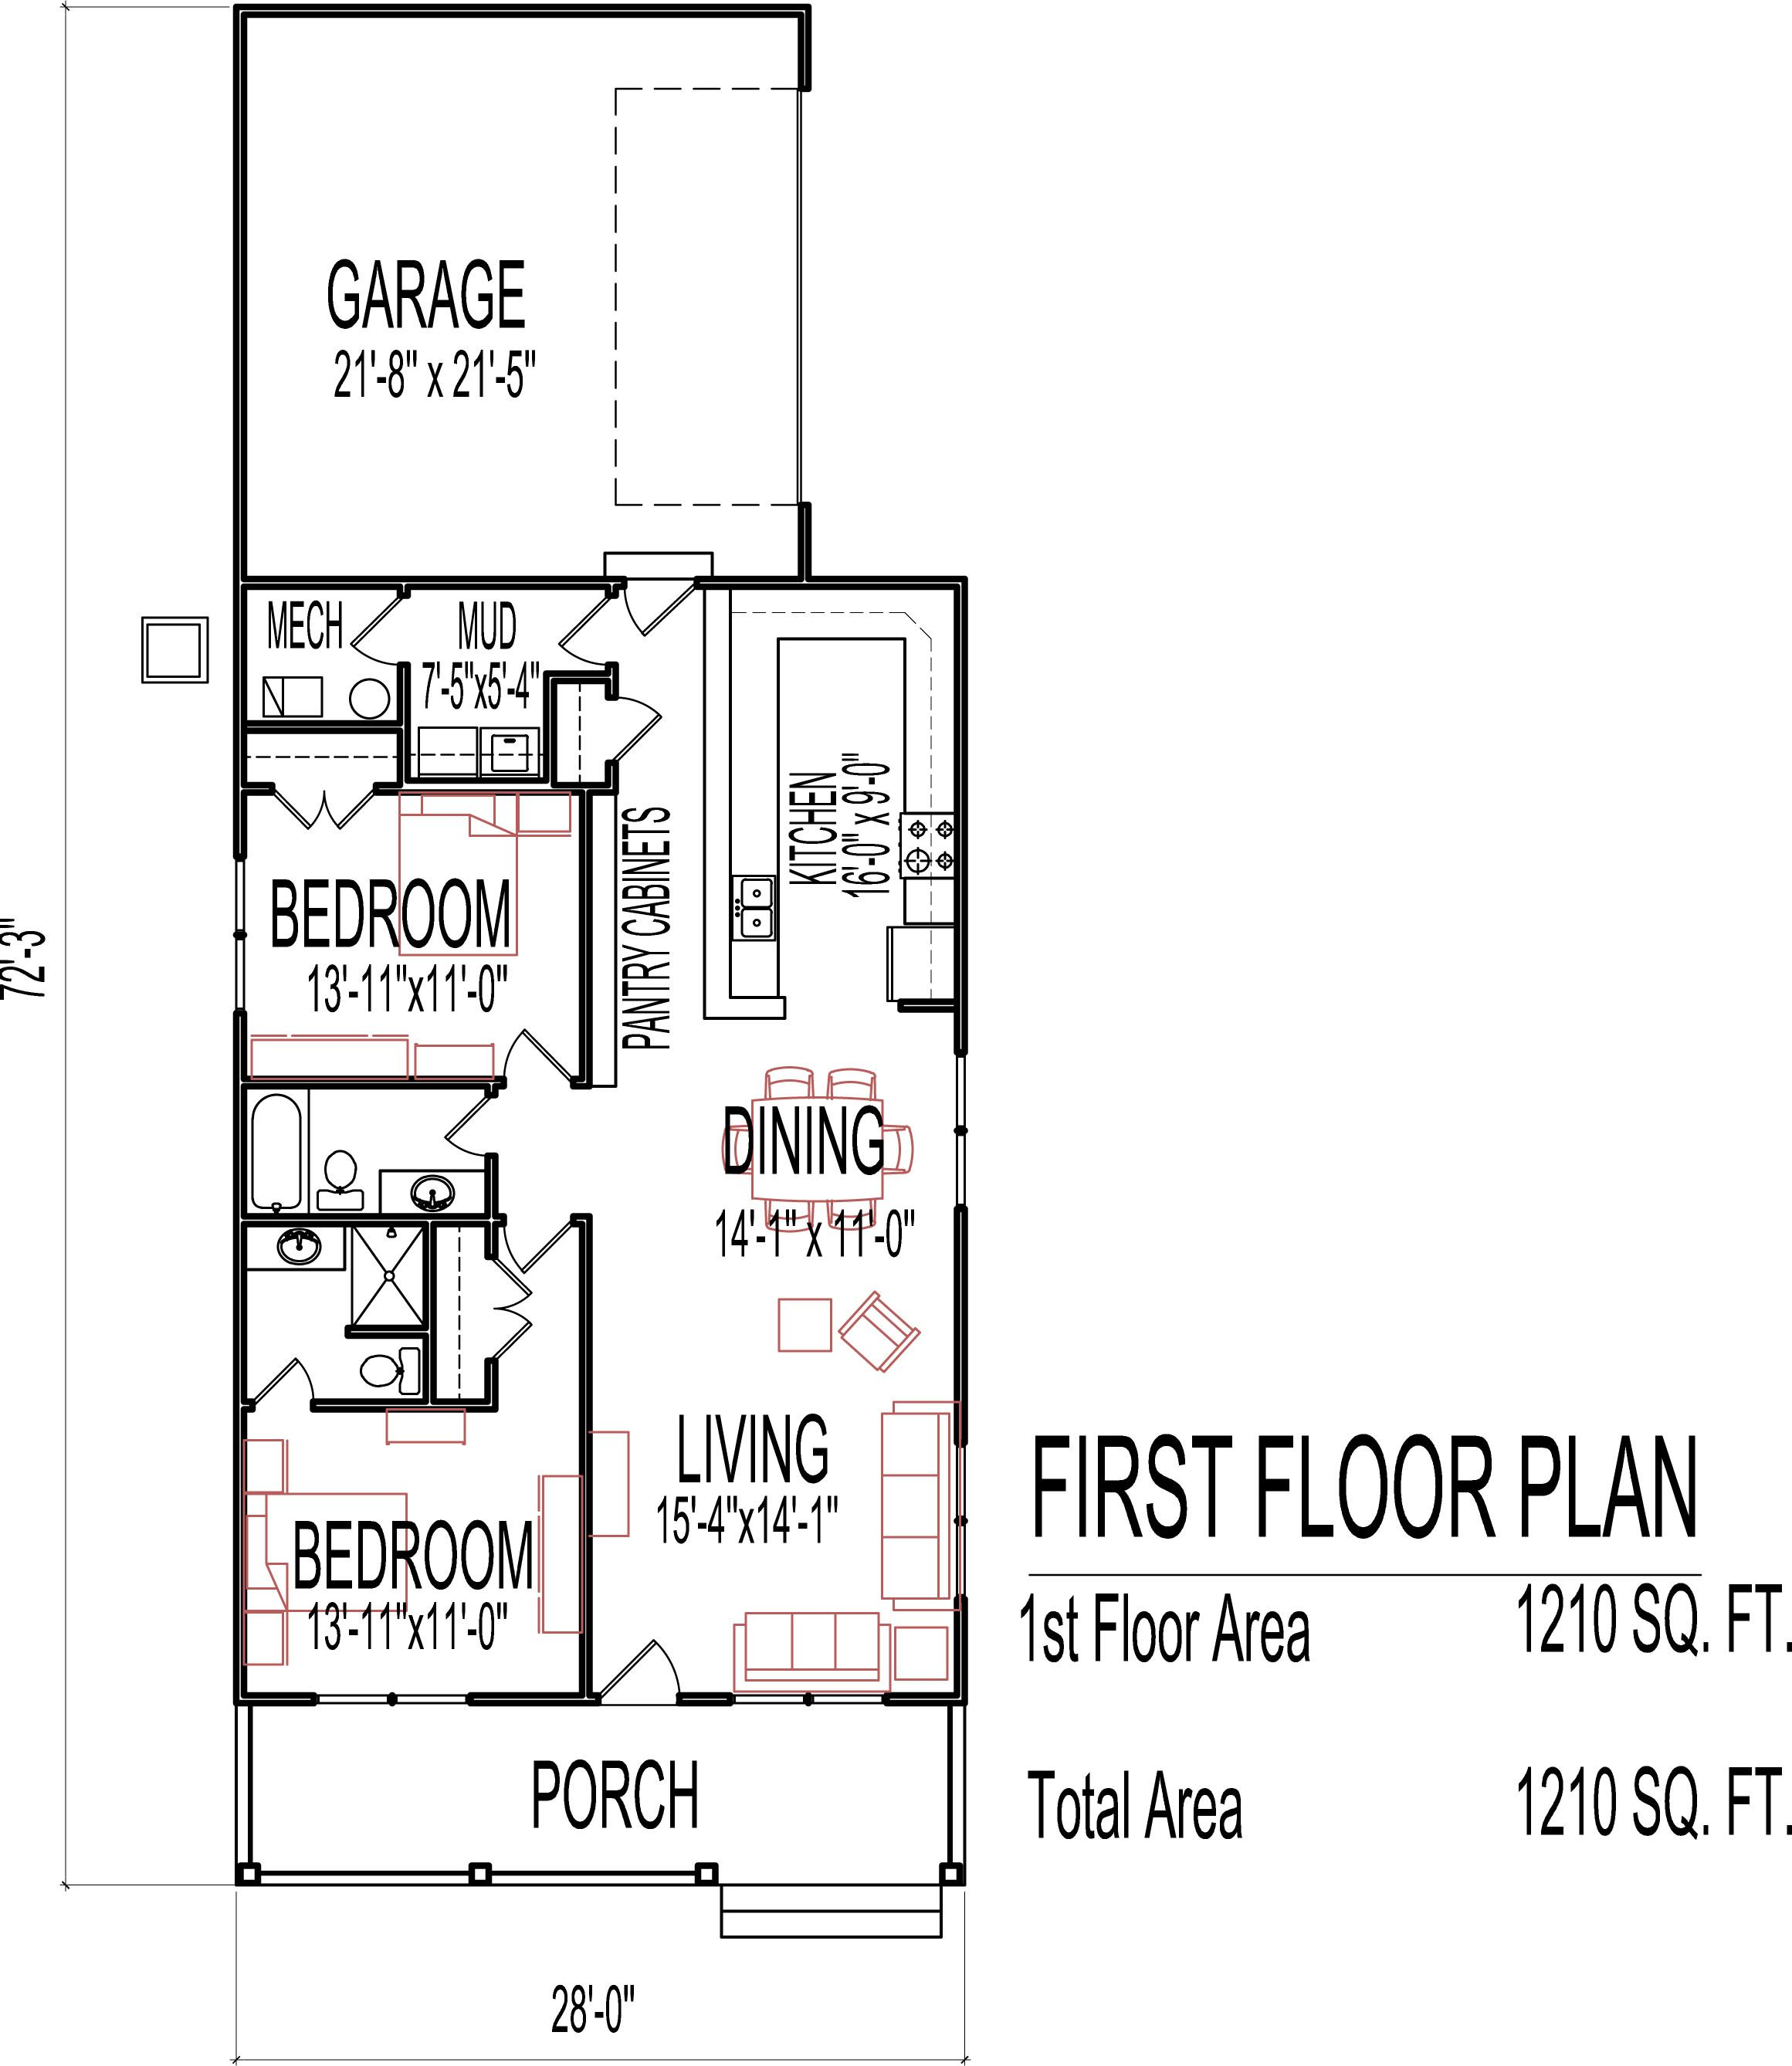 Small low cost economical 2 bedroom 2 bath 1200 sq ft House plans 2500 sq ft one story